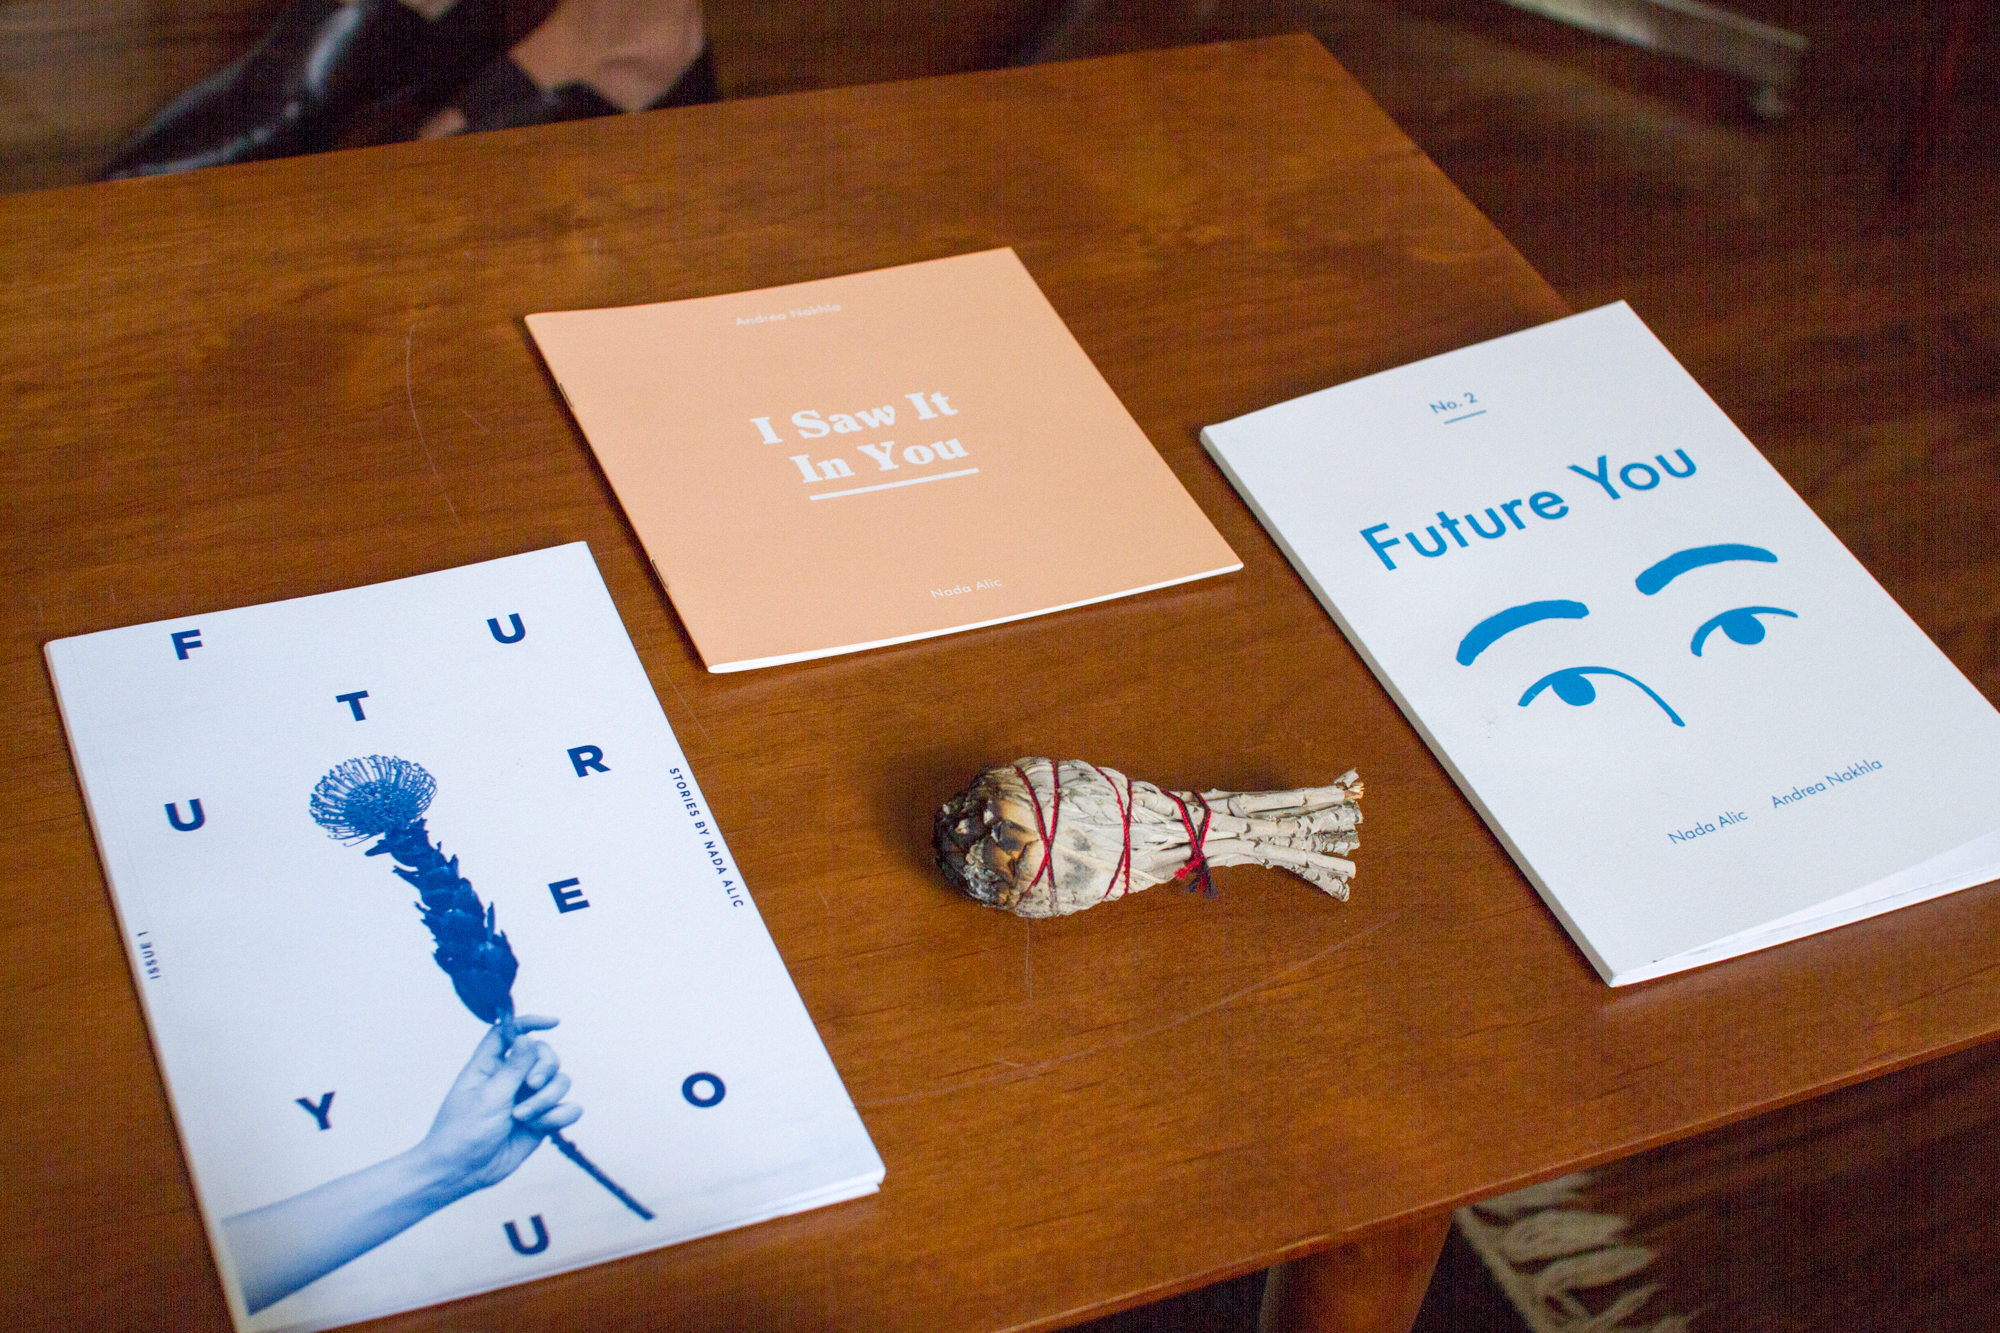 I Saw It In You by Andrea Nakhla with Prose by Nada Alic;    Future You and Future You No. 2    by Nada Alic